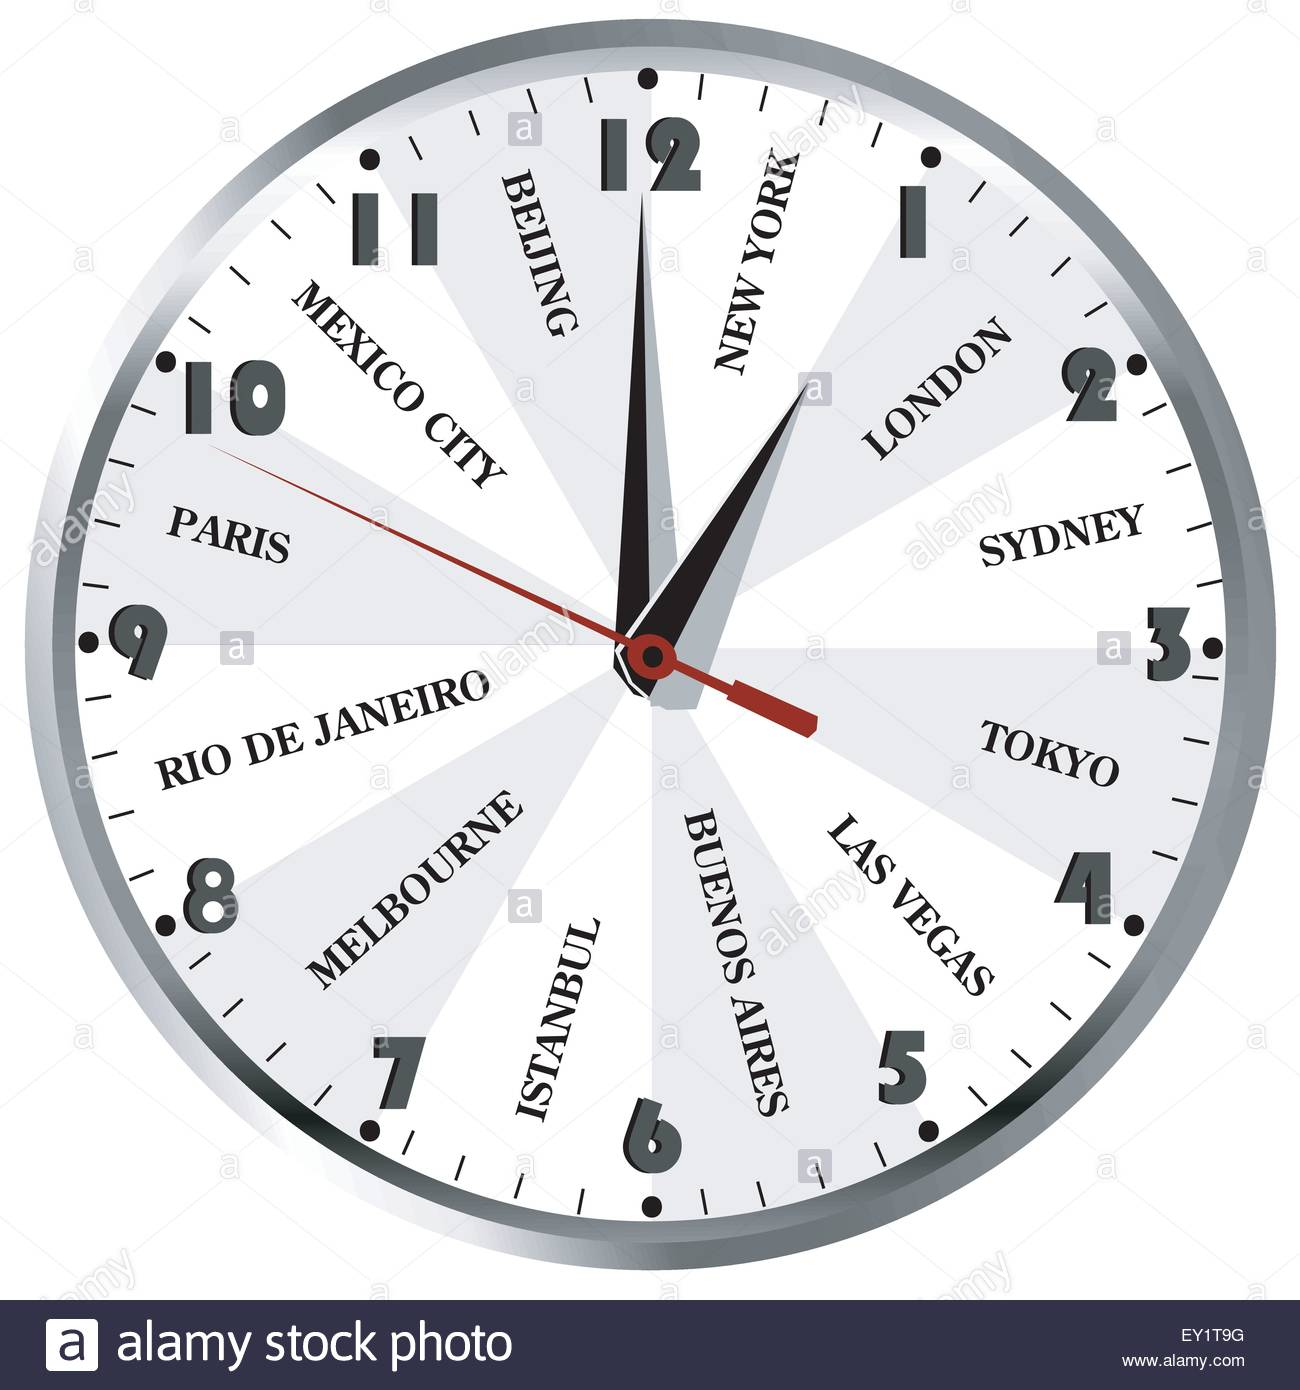 Wall clock with popular city names from the world for travel stock vector wall clock with popular city names from the world for travel agencies amipublicfo Choice Image